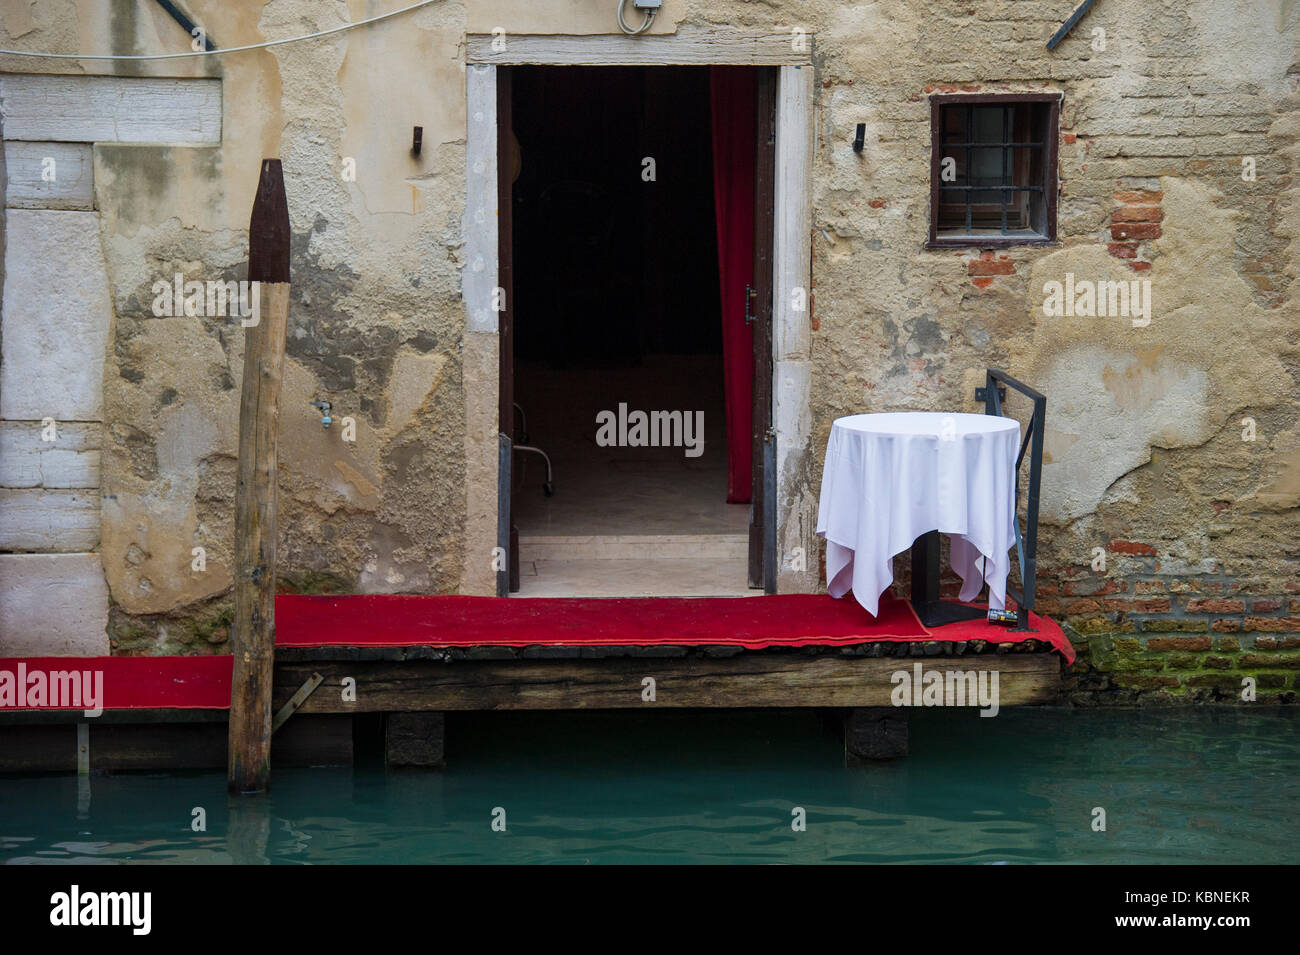 Dinner for none on a Venetian terrace - Stock Image